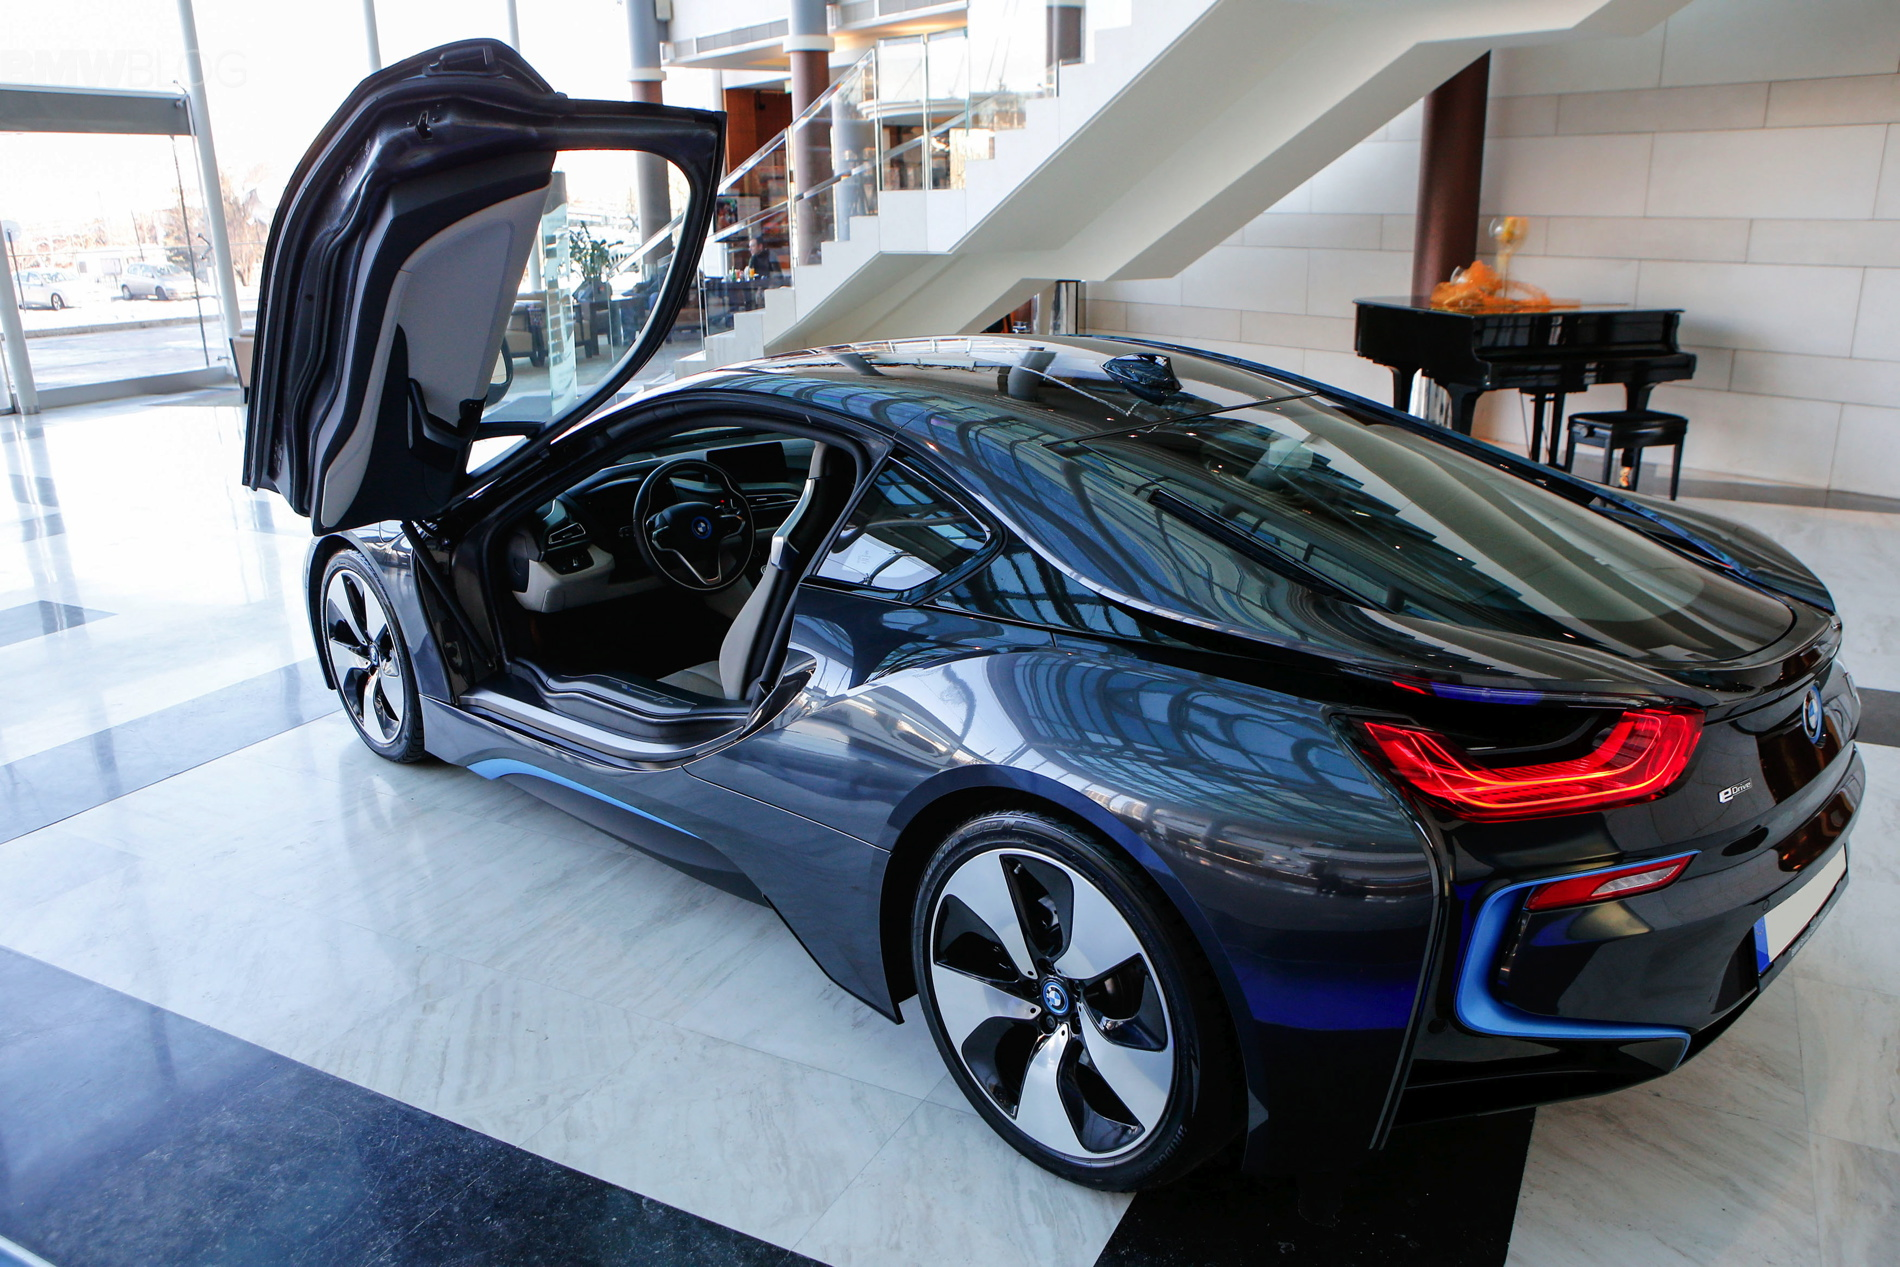 2015 bmw i8 photoshoot sofia 01